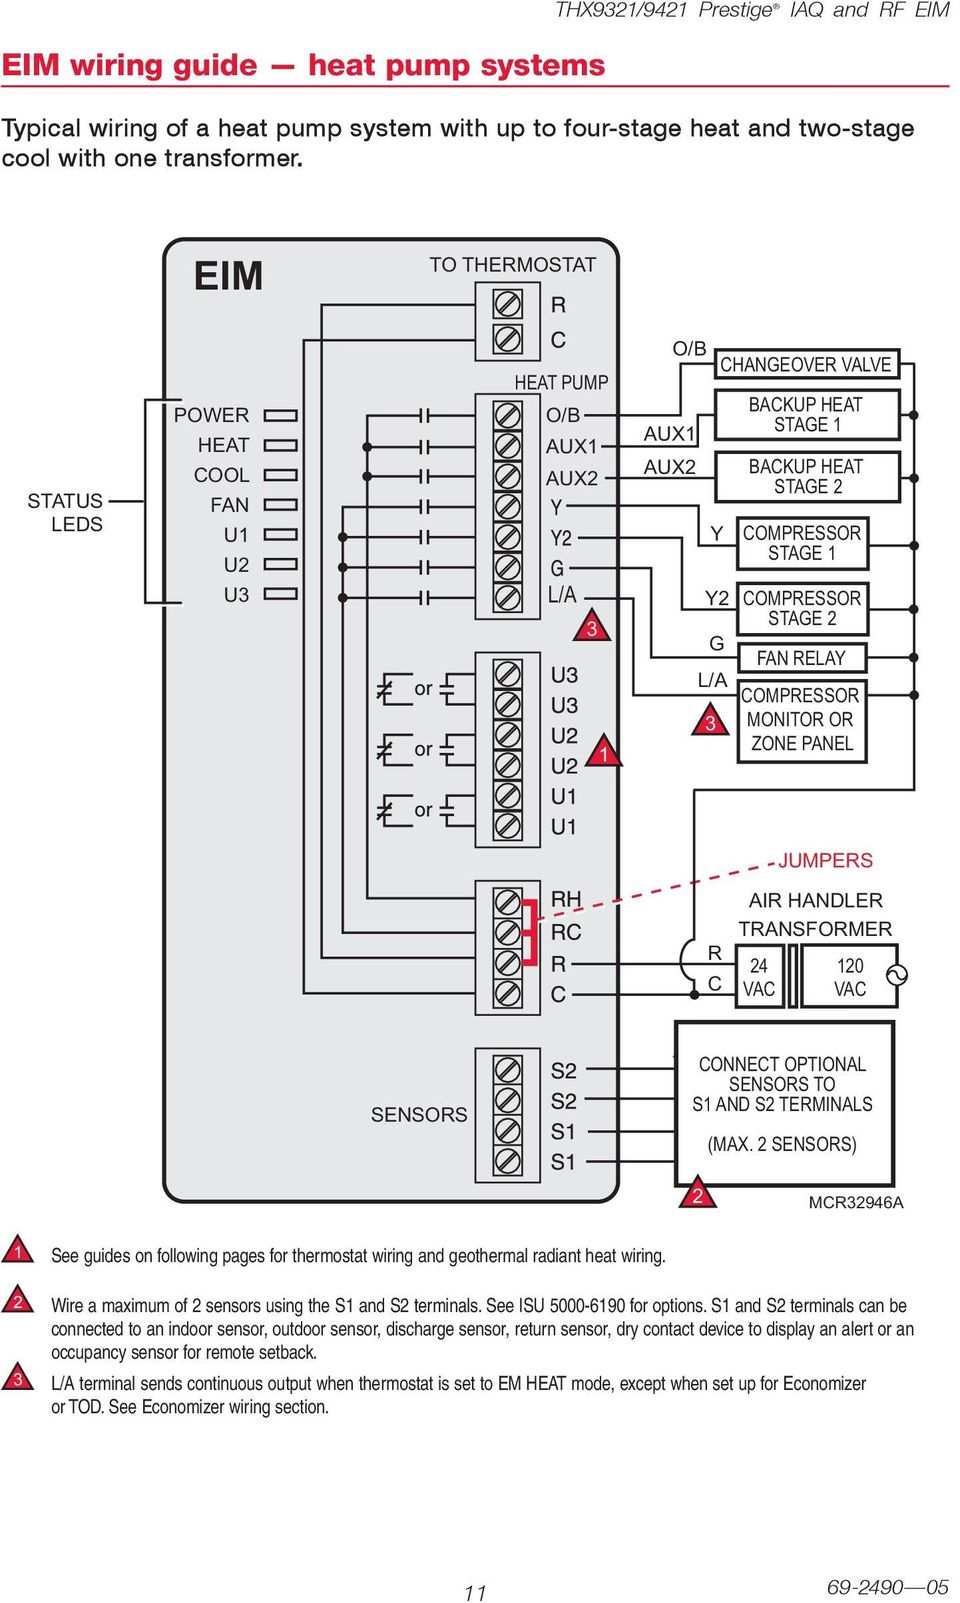 ZONE PANEL JUMPES AI HANDLE TANSFOME 0 SENSOS ONNET OPTIONAL SENSOS TO S AND S TEMINALS (MAX. SENSOS) M946A See guides on following pages for thermostat wiring and geothermal radiant heat wiring.